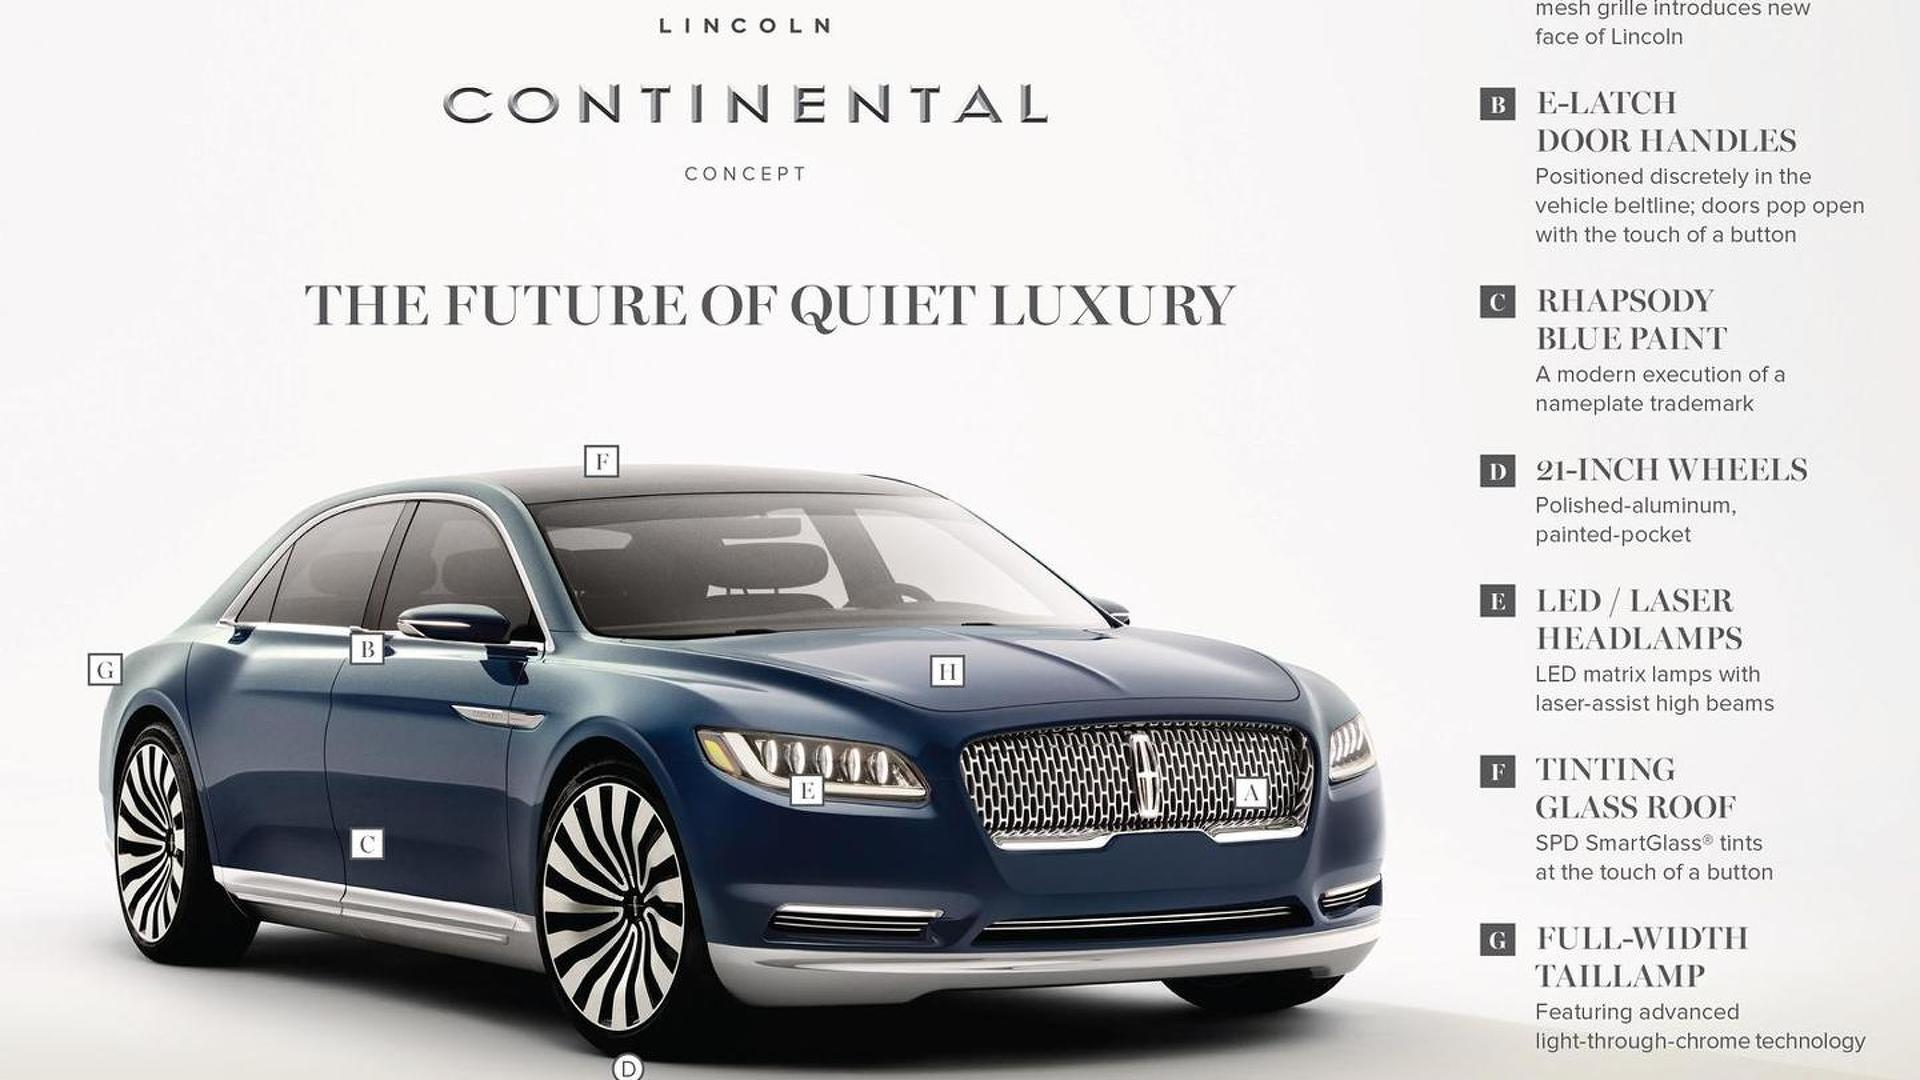 https://icdn-5.motor1.com/images/mgl/kk8OQ/s1/2015-556884-2015-lincoln-continental-concept1.jpg